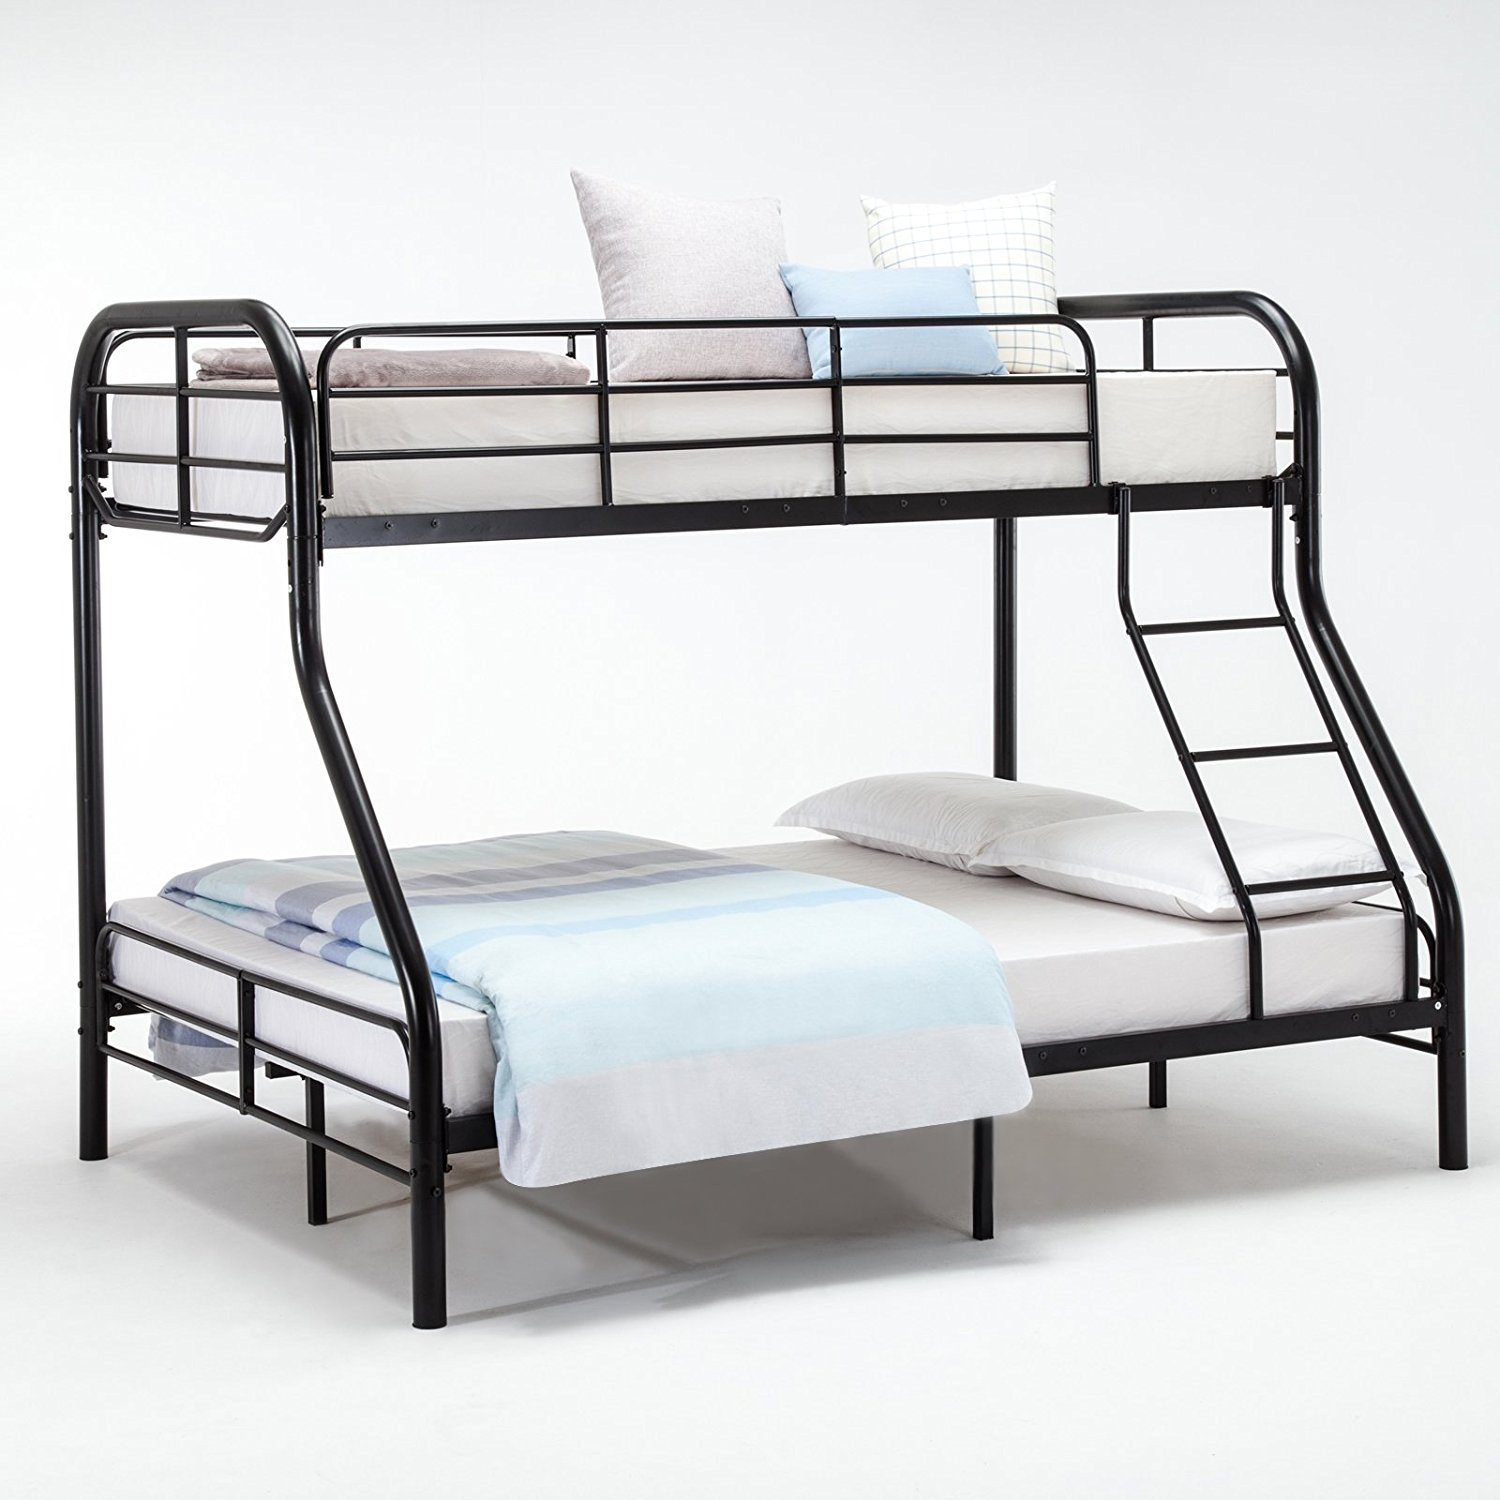 DFM Metal Twin over Full Bunk Beds Ladder, Kids/ Teens/ Adult Dorm Bedroom Furniture